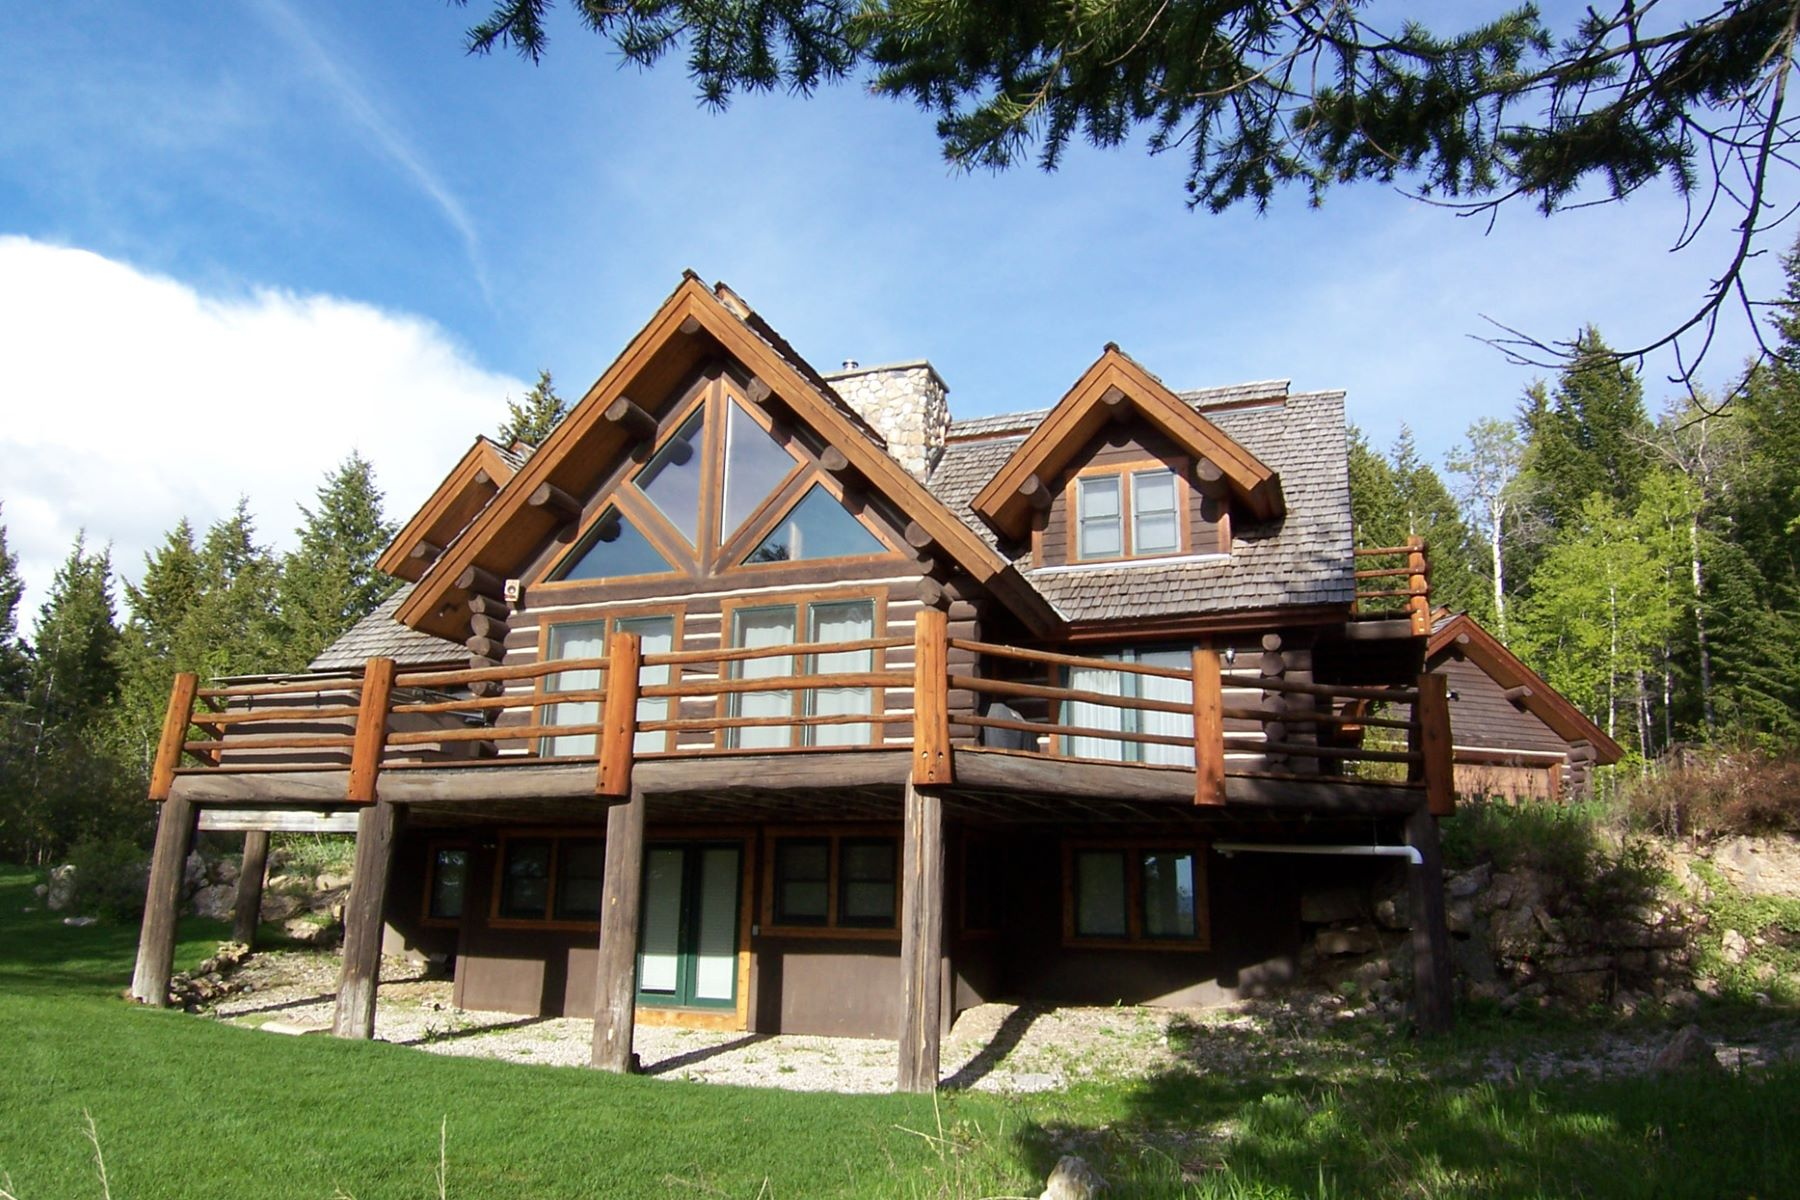 Maison unifamiliale pour l Vente à Handcrafted Log Home in the Trees 3310 Sorensen Creek Drive Victor, Idaho, 83455 Jackson Hole, États-Unis